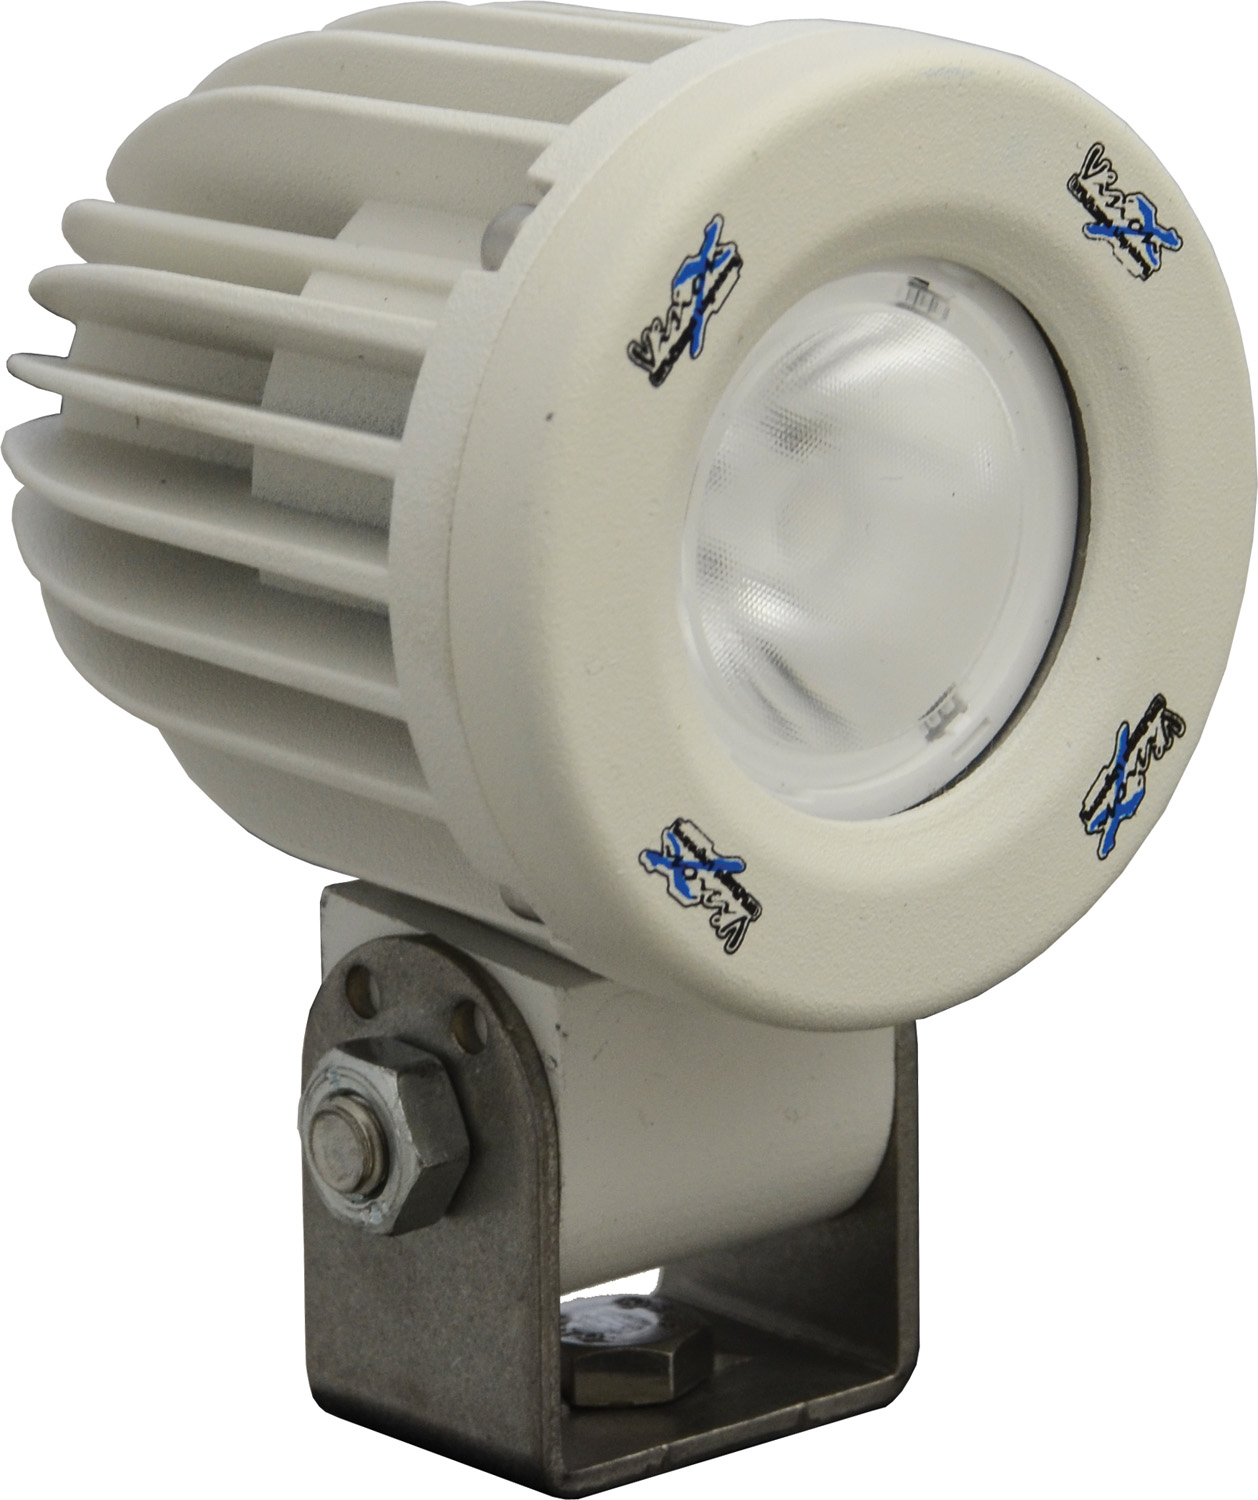 "2"" SOLSTICE SOLO PRIME WHITE 10W LED 40ç WIDE"